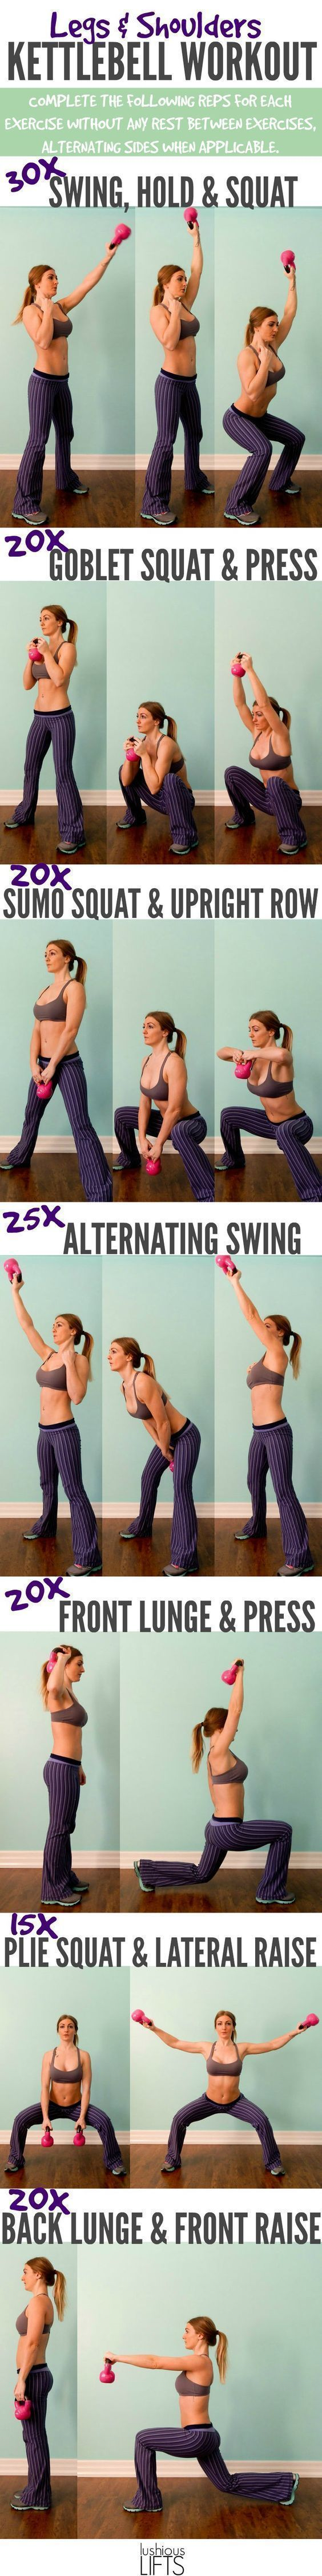 Legs and Shoulders Kettlebell Workout